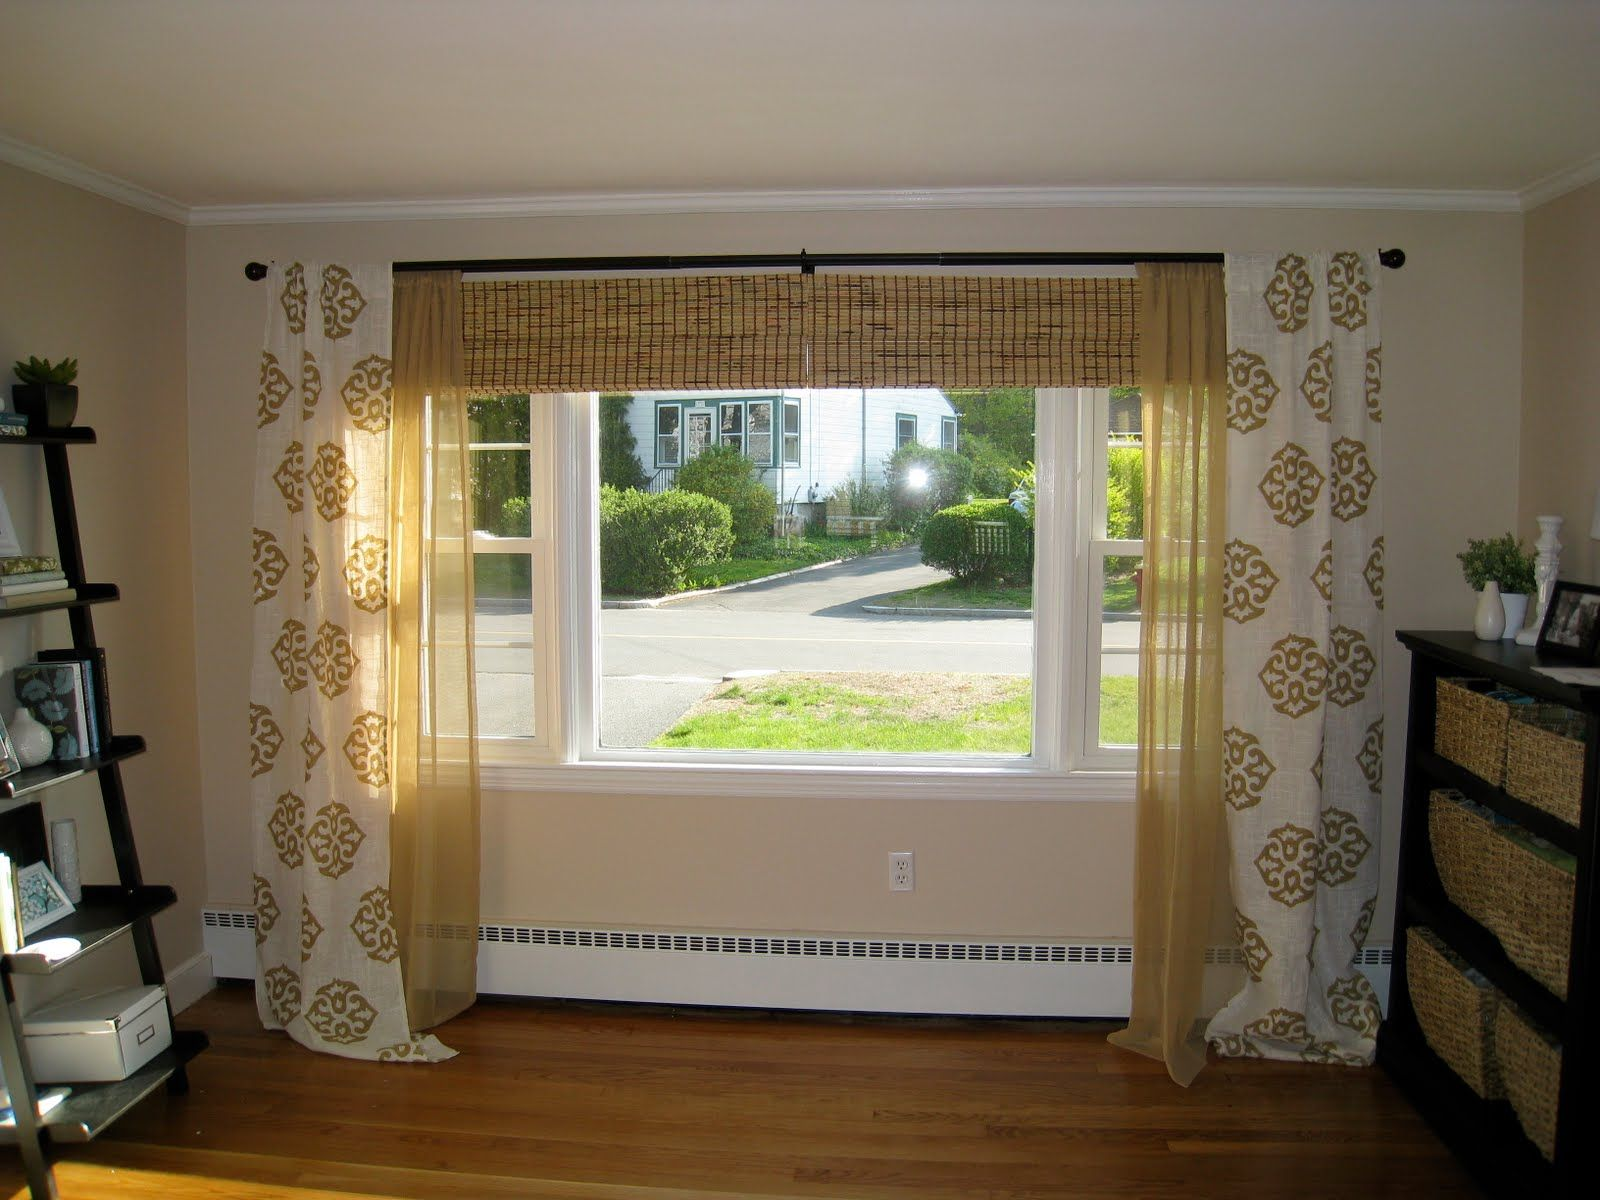 Living Room Living Room Window Ideas 1000 images about living room window treatments on pinterest curtains and windows